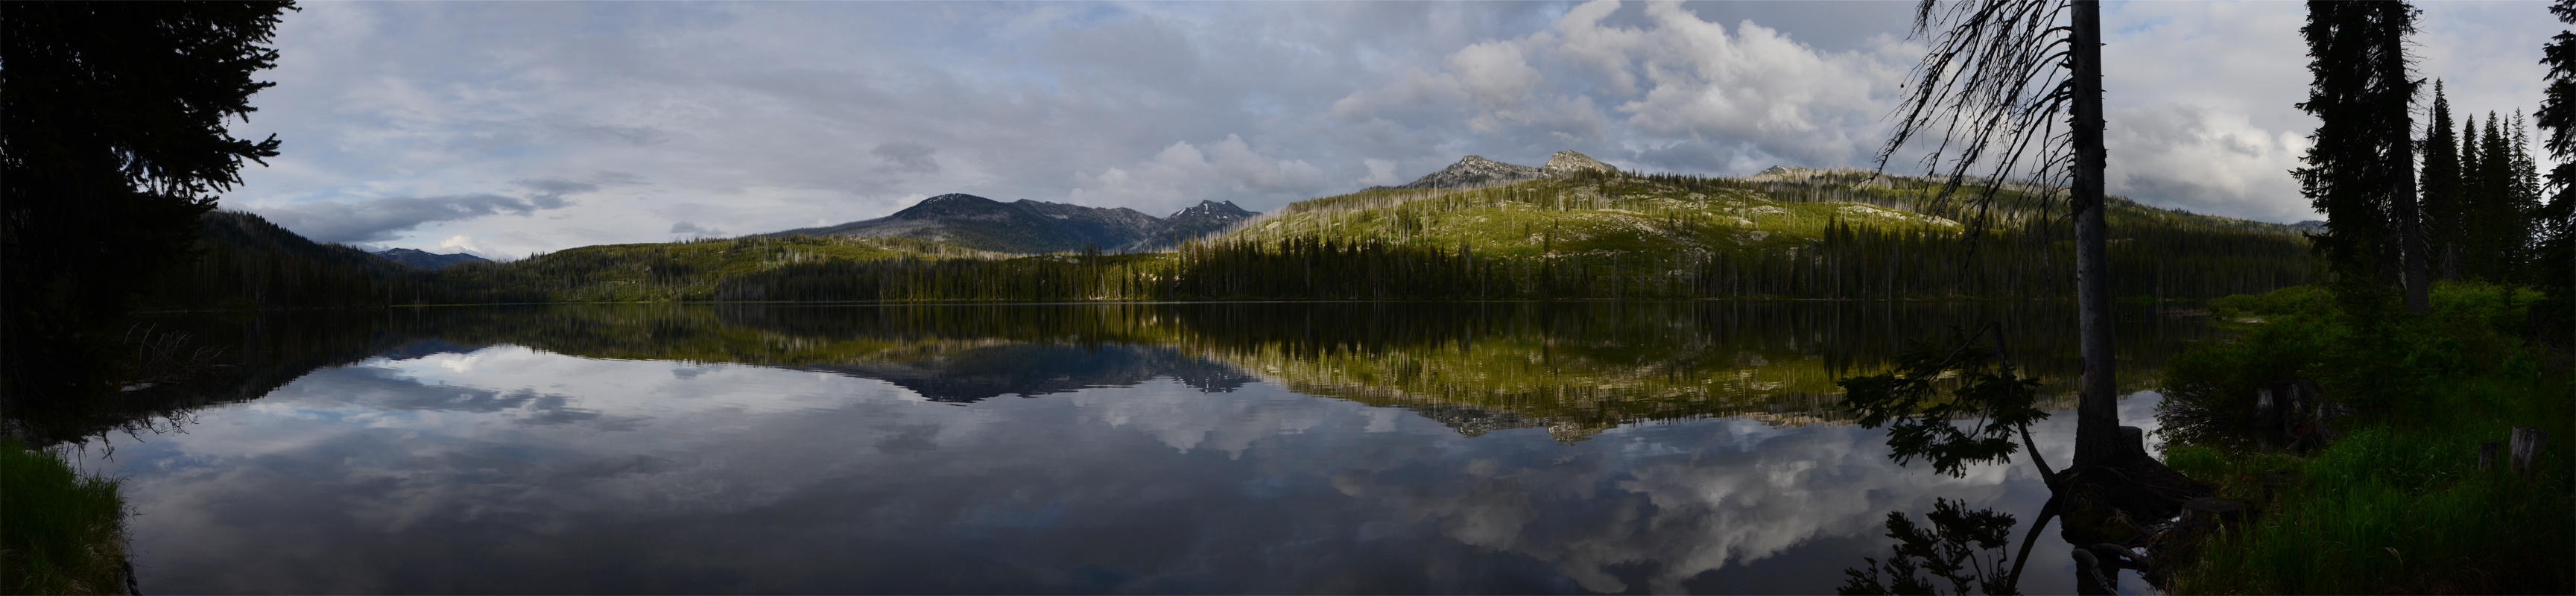 Upper Payette Lake After the Storm by eRality